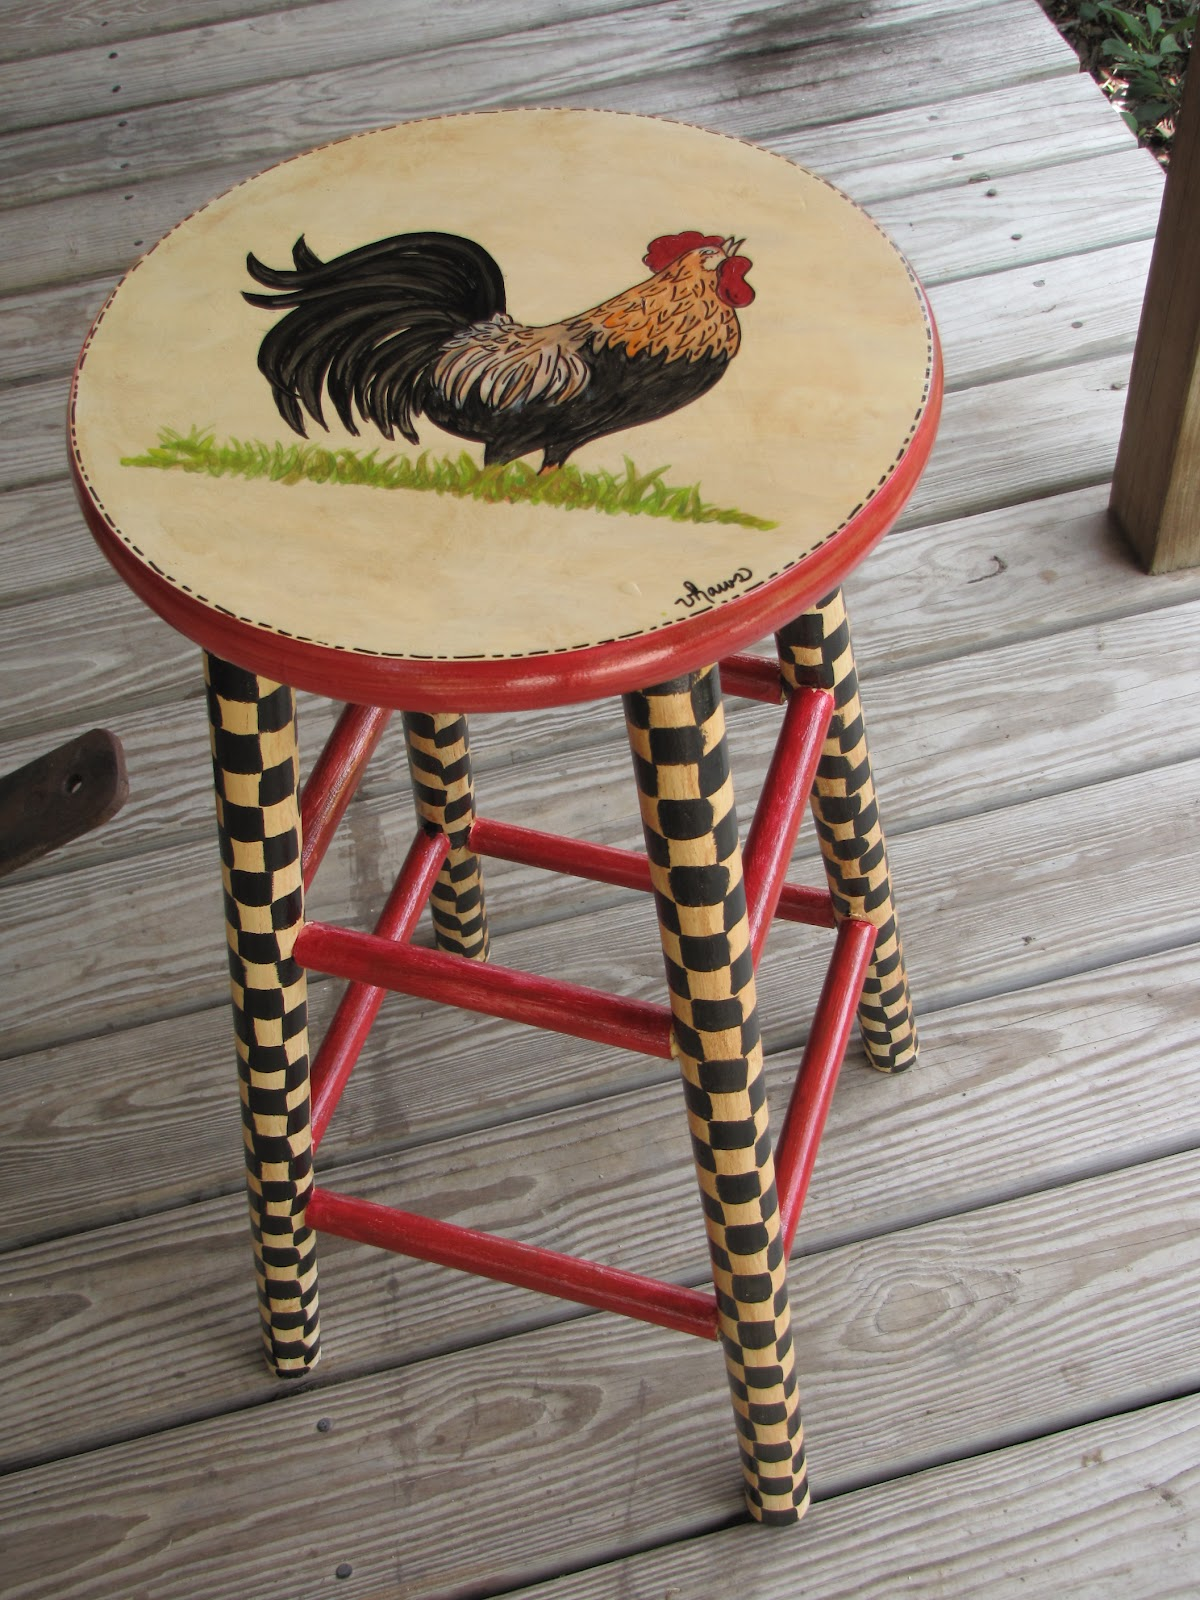 Sold the first Rooster Bar Stool fast and had a request for another one Sold it today